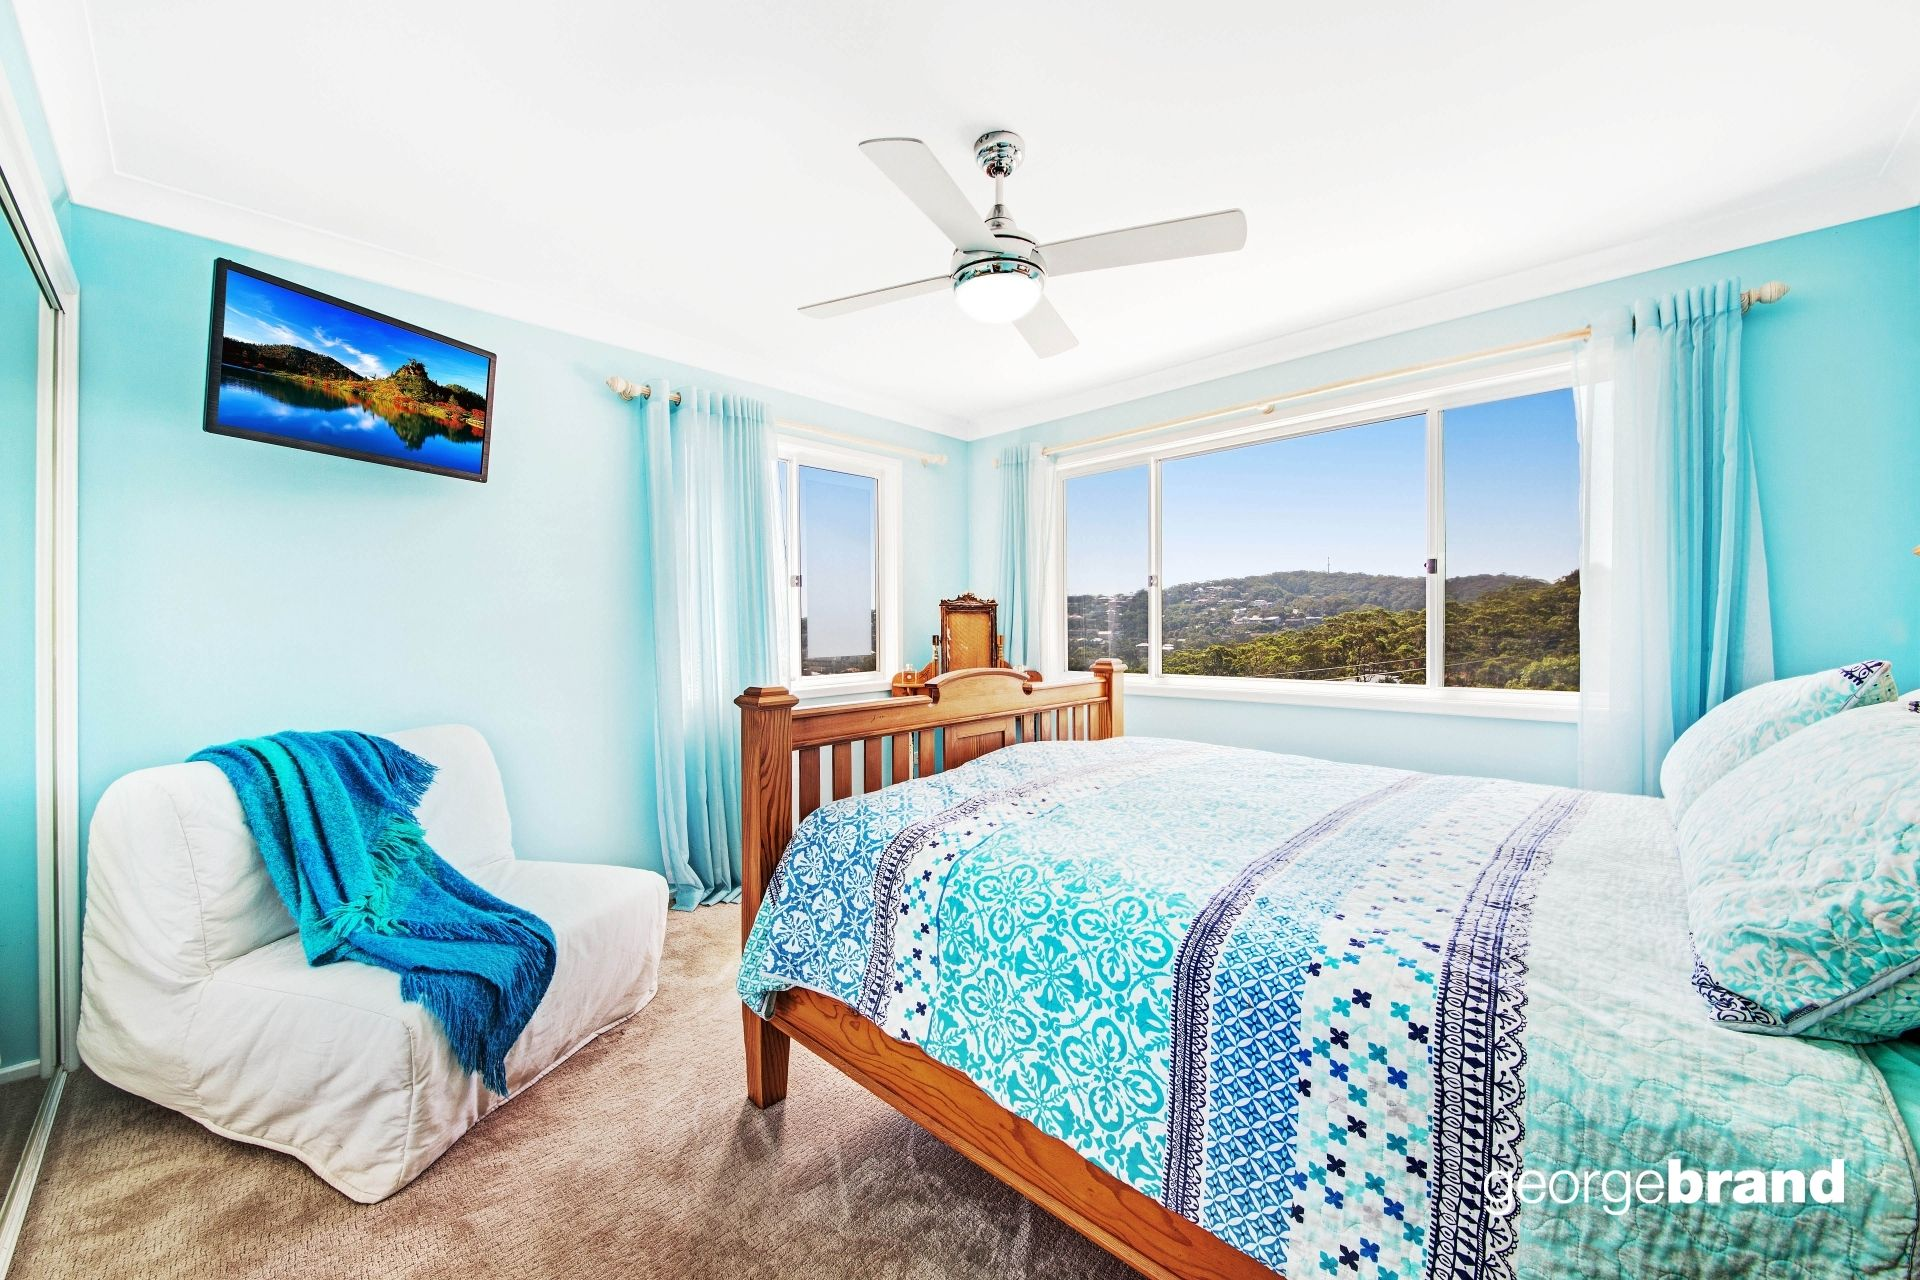 Copacabana Real Estate: THE LIGHT, BRIGHT, BEAUTIFUL BEACH HOUSE